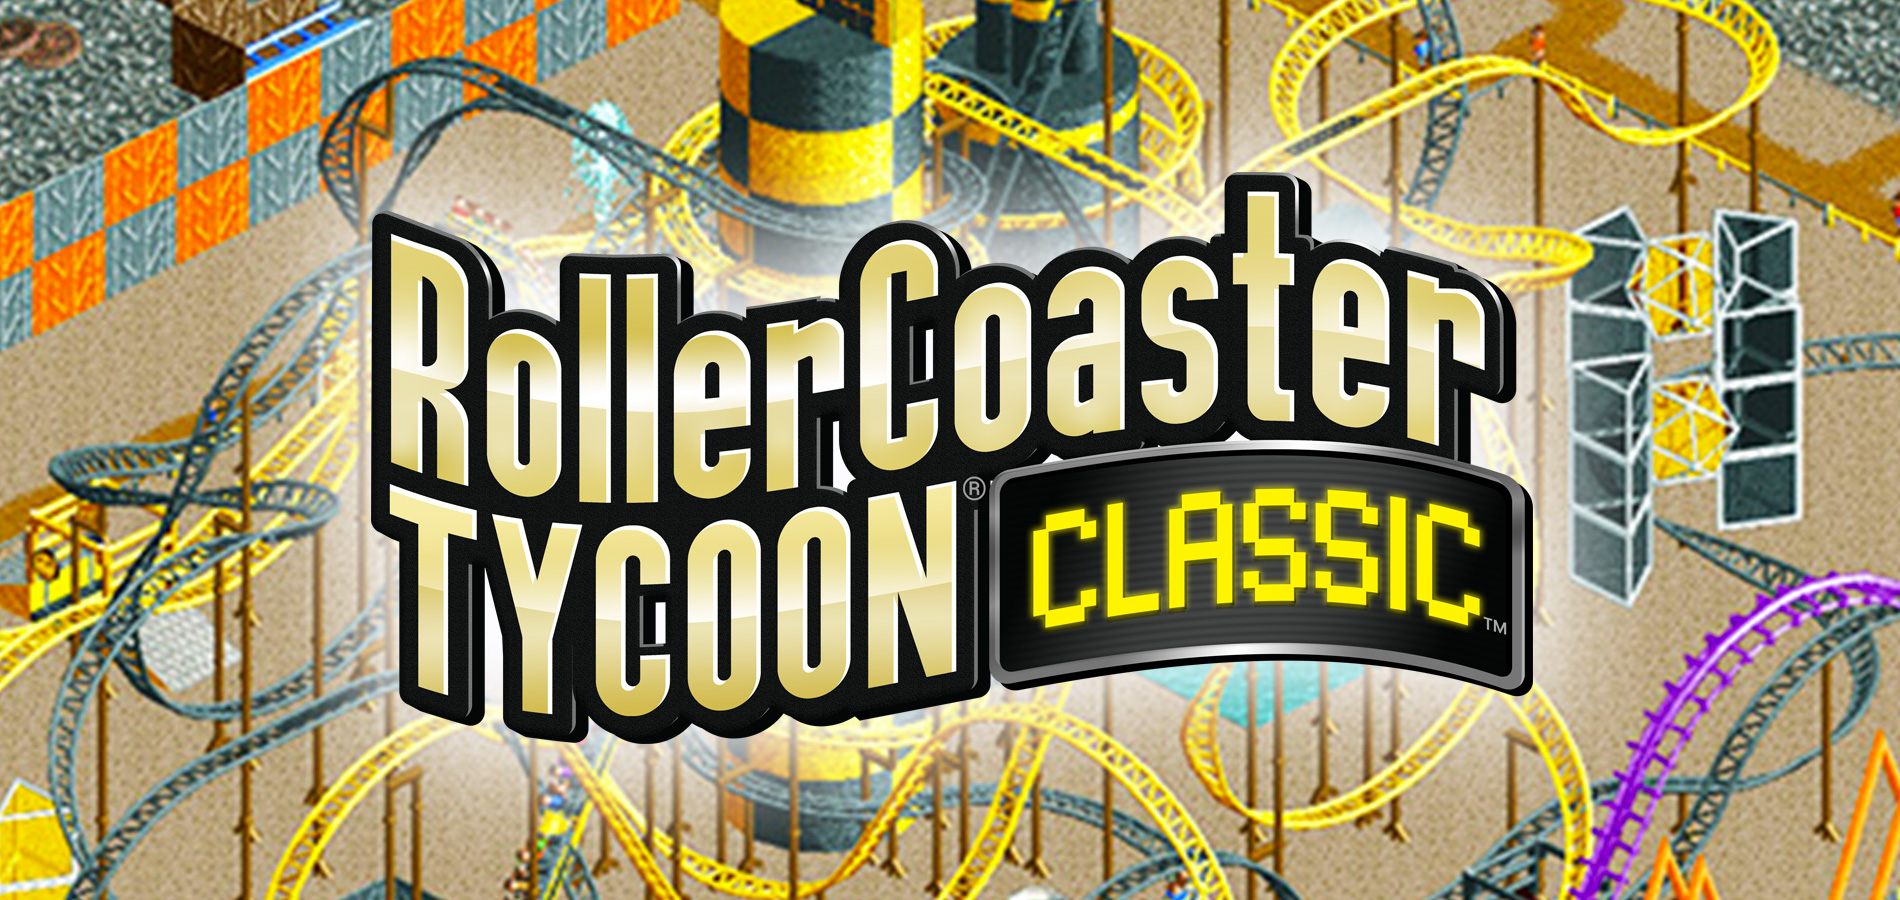 Chris Sawyer and Atari® Announce RollerCoaster Tycoon